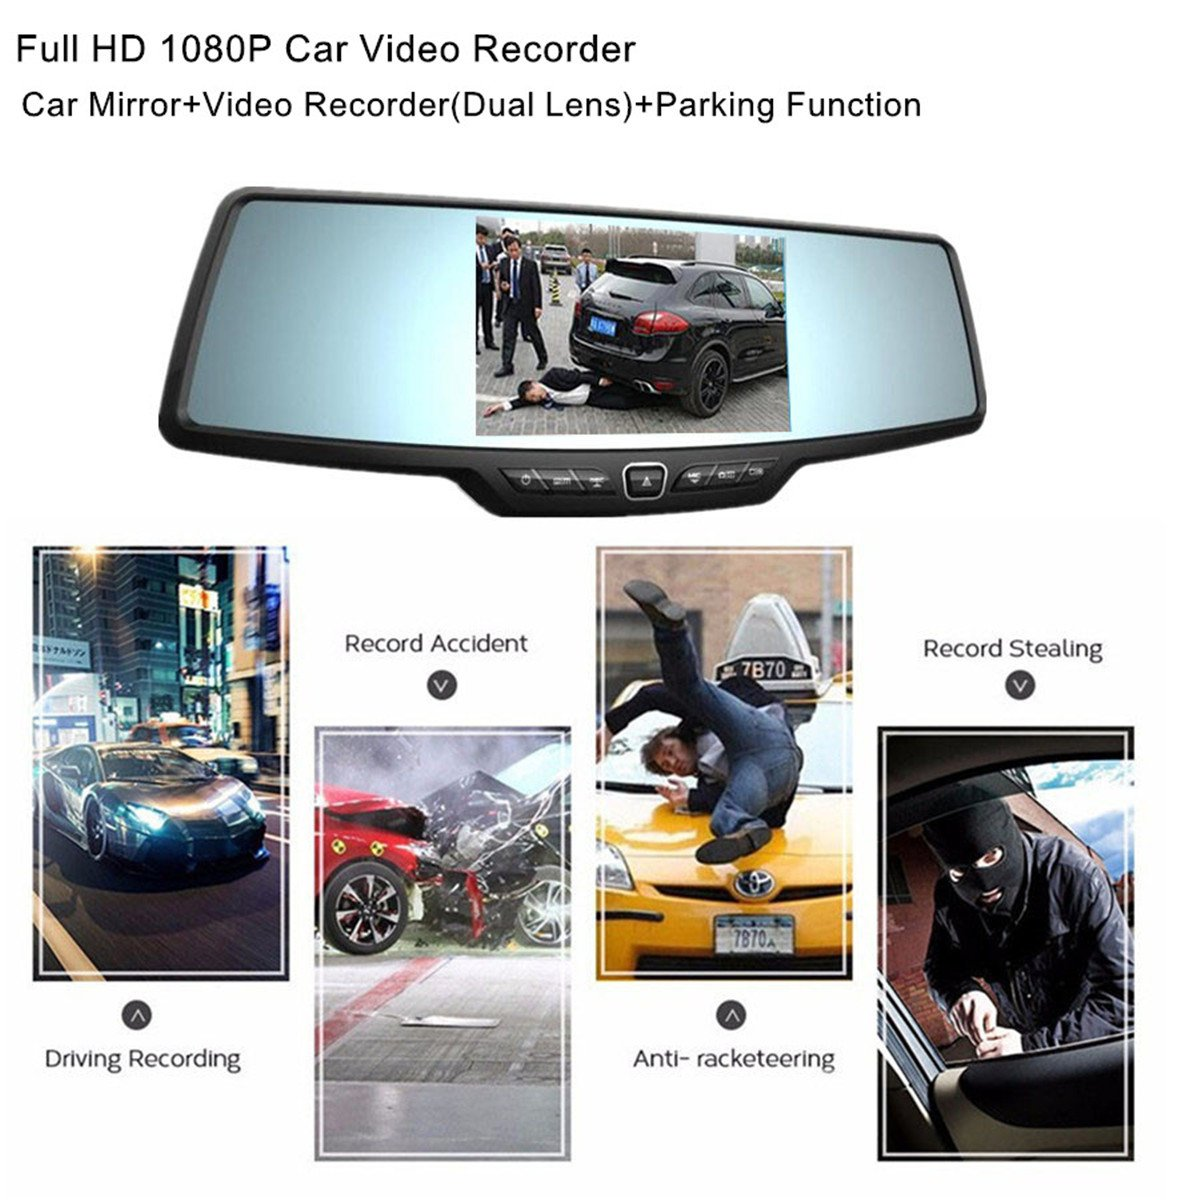 Dash Cam,4.3'' Full HD 1080P Rearview Mirror Dual Lens Video Recorder Car DVR 170 Degree Wide Angle, Loop Recording,G-Sensor,Parking Monitor,Reverse Image by Range Tour (Image #2)